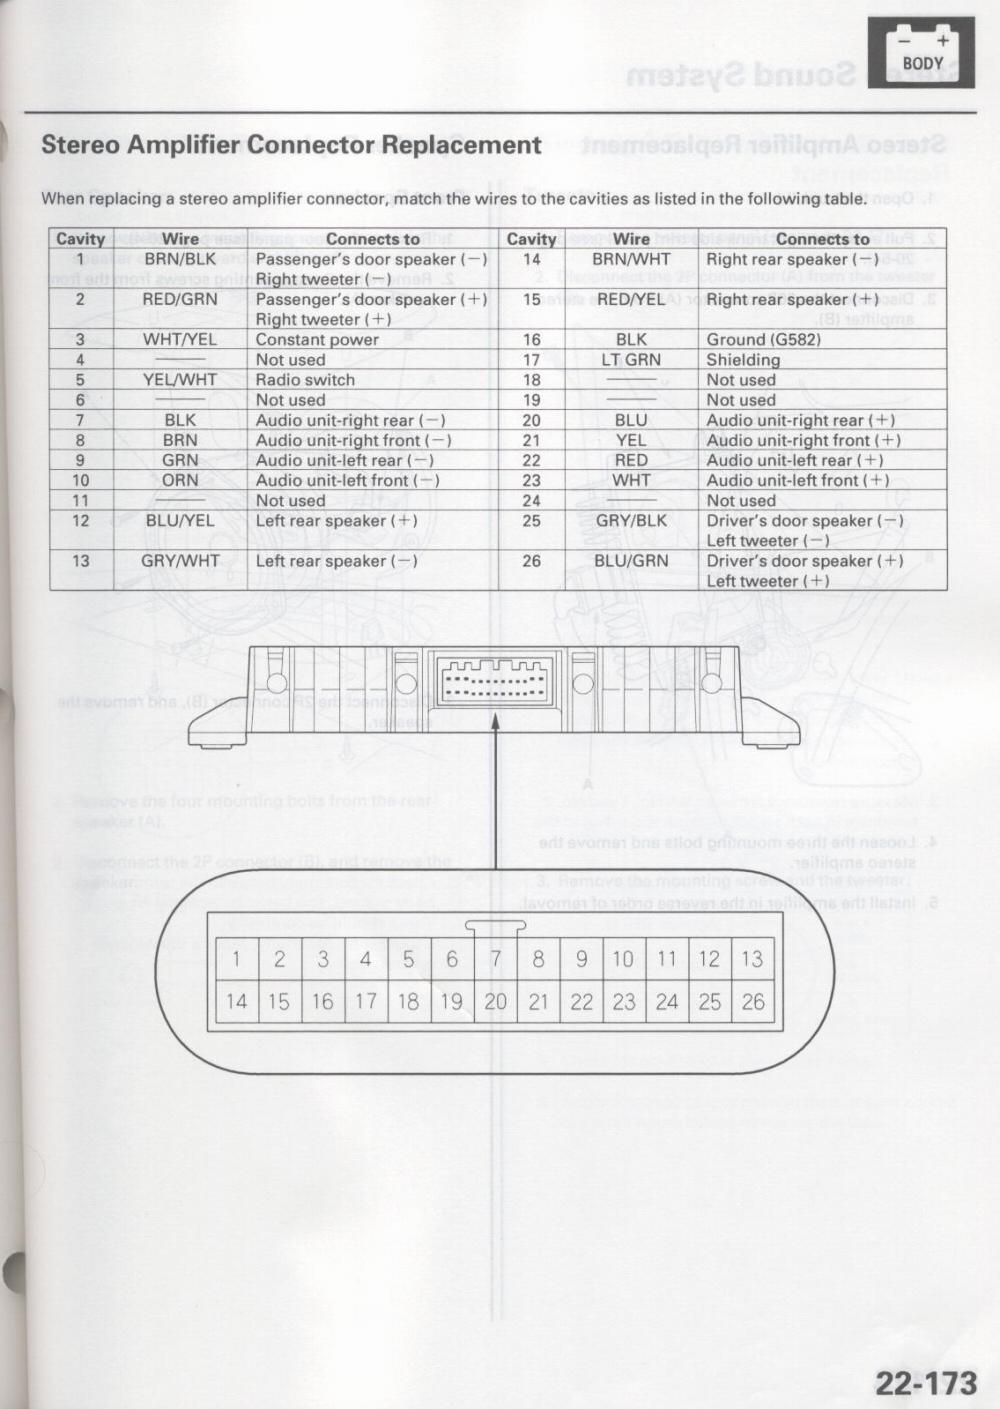 Acura 2002 TL car stereo amplifier wiring diagram harness car radio stereo audio wiring diagram autoradio connector wire Acura MDX Rear Knuckle at mifinder.co